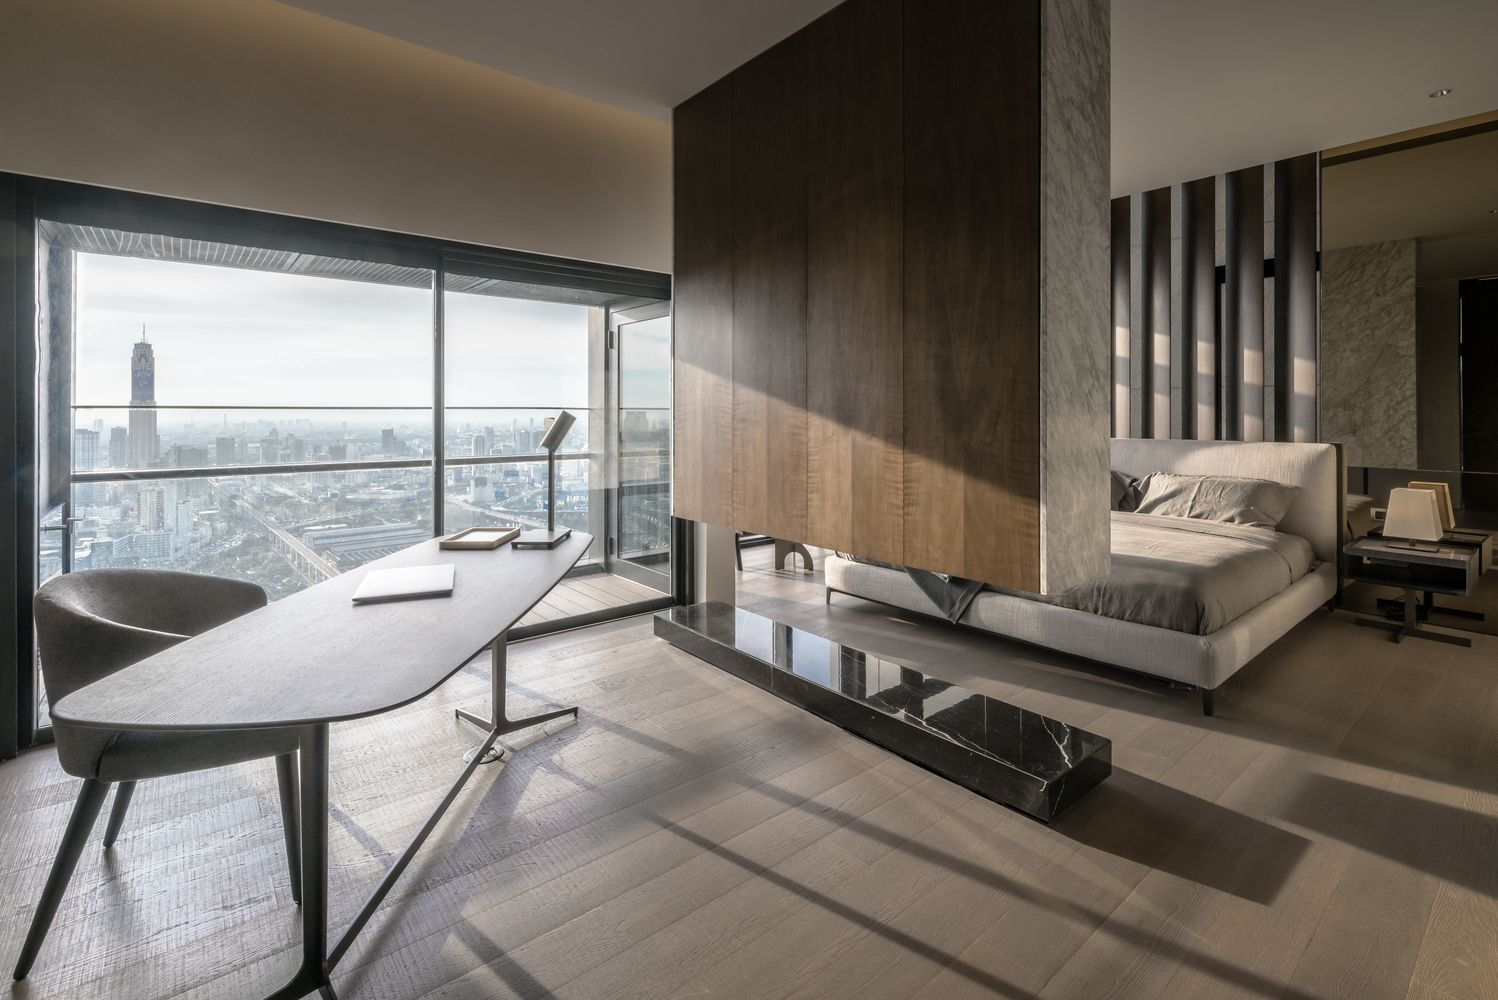 2 bedroom interior design gallery of fhm bachelor apartment  onguong pte ltd    apartments